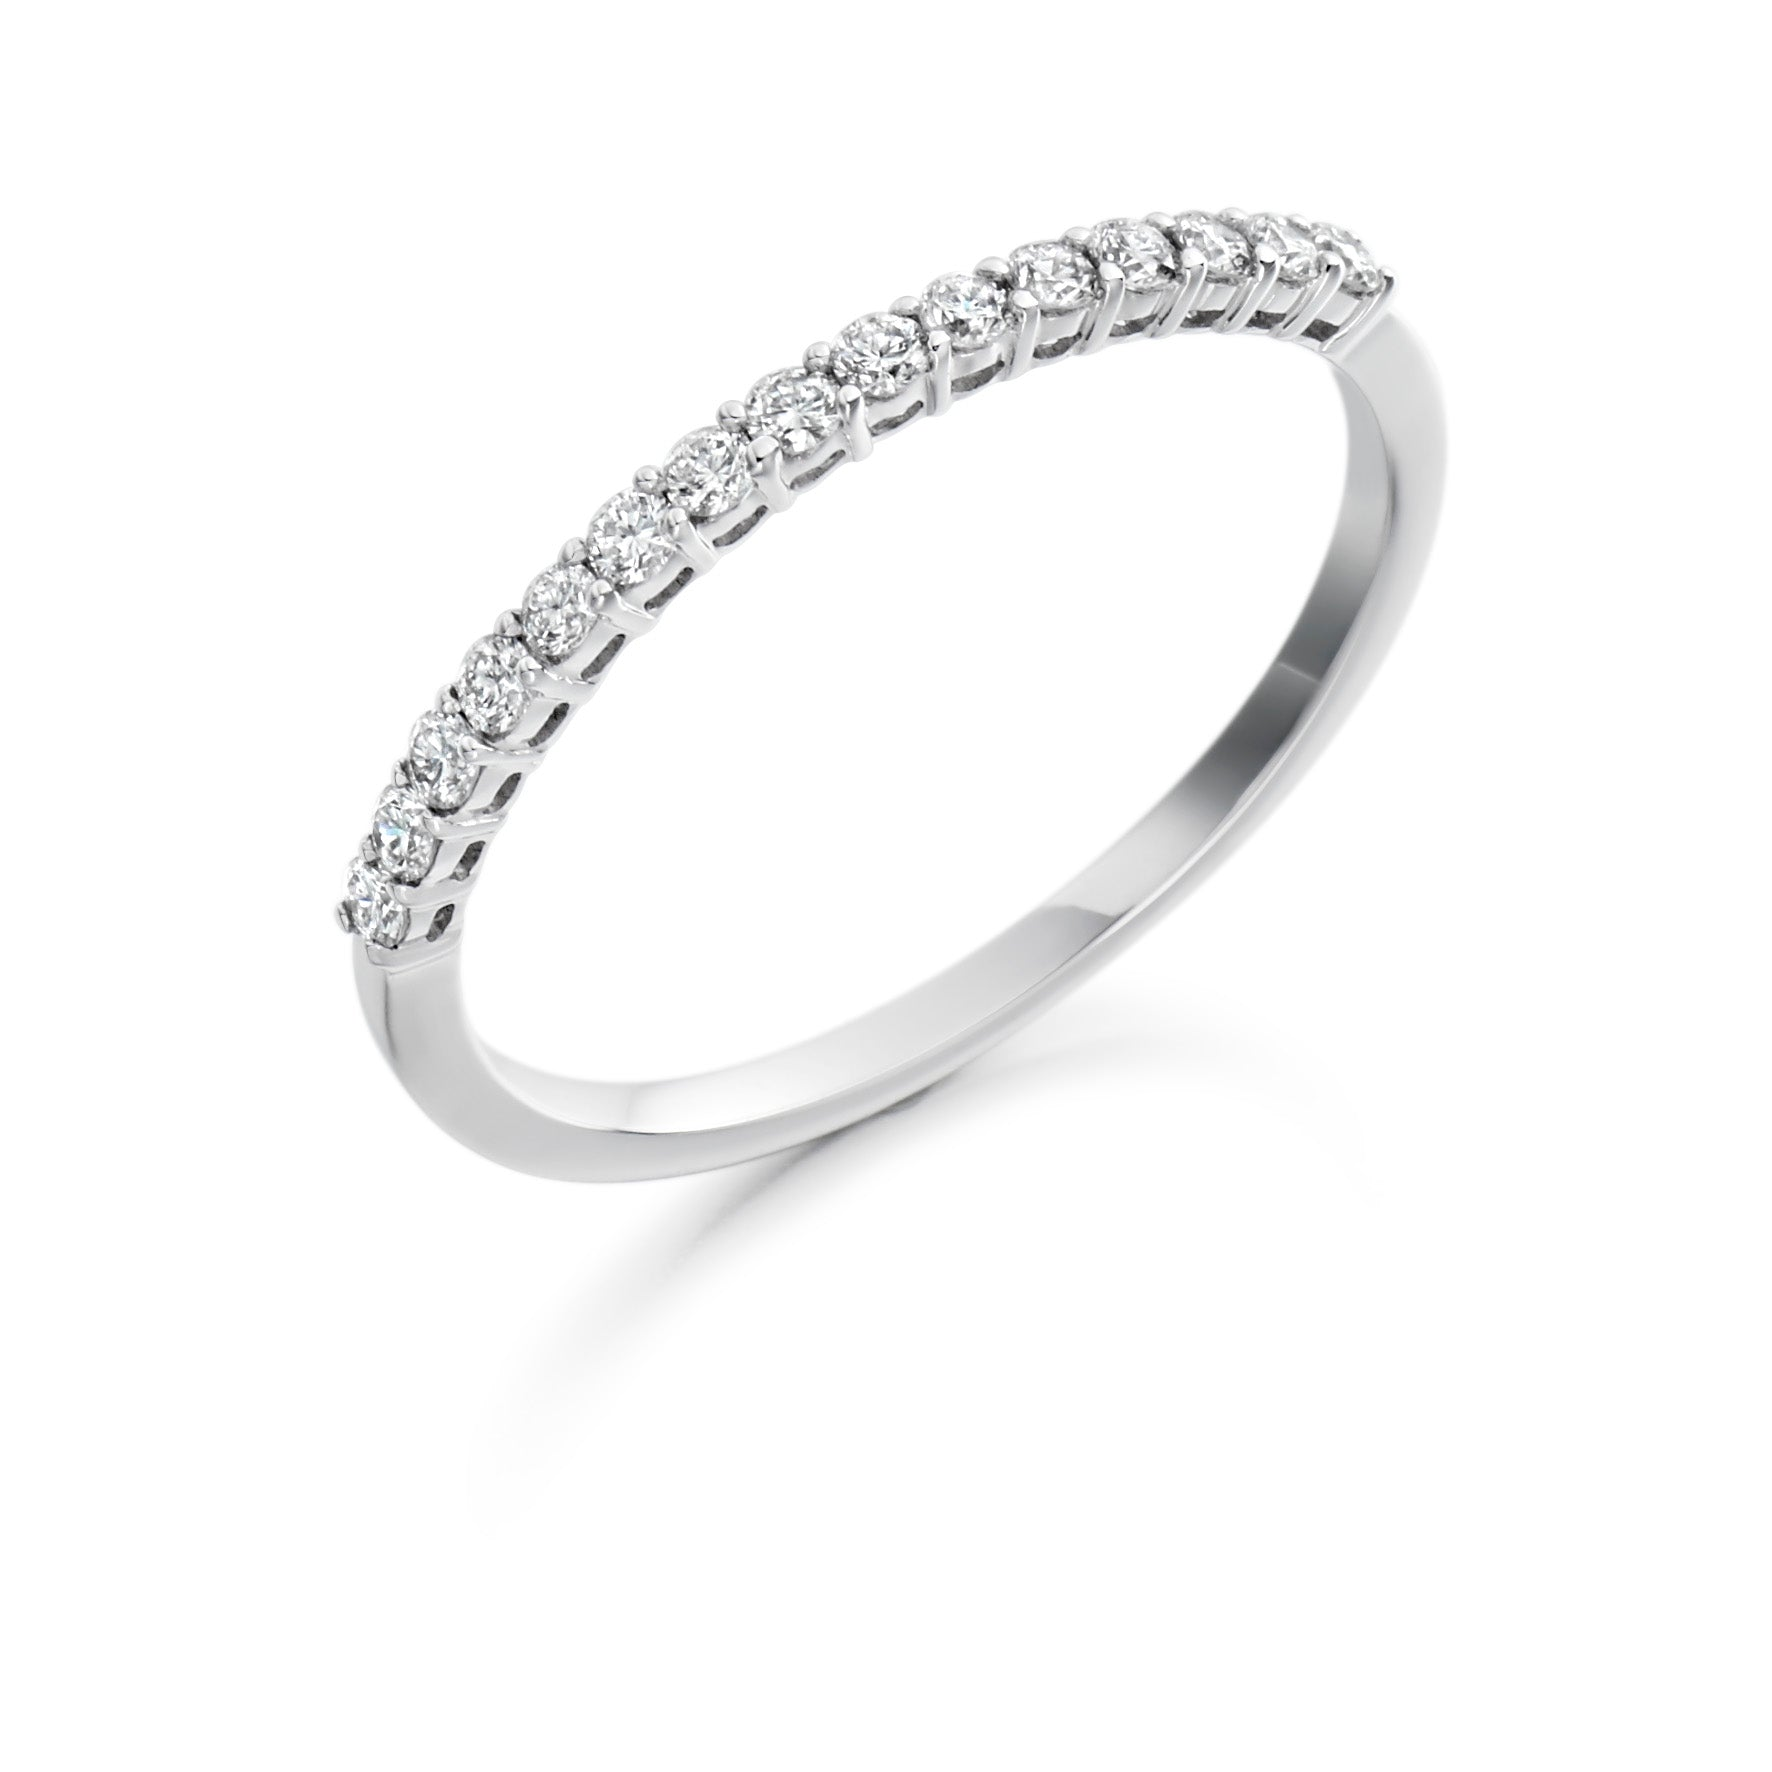 18ct White Gold 0.25ct Round Brilliant Cut Diamond Vintage Eternity Ring